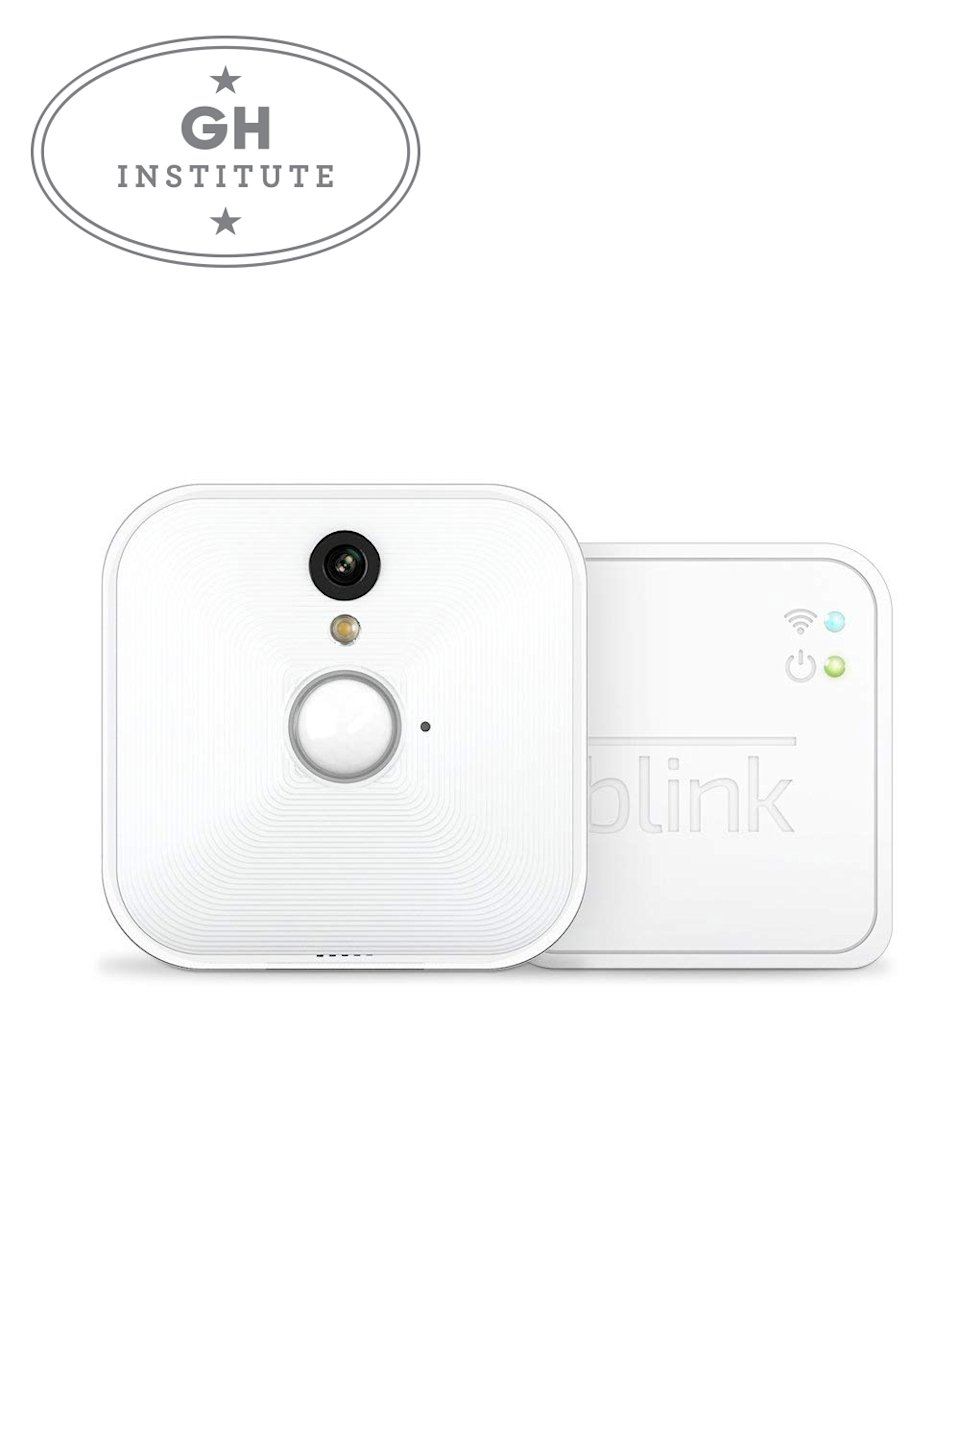 "<p><strong>Blink Home Security</strong></p><p>amazon.com</p><p><strong>$79.99</strong></p><p><a href=""https://www.amazon.com/dp/B0172DDZ5E?tag=syn-yahoo-20&ascsubtag=%5Bartid%7C10055.g.3950%5Bsrc%7Cyahoo-us"" rel=""nofollow noopener"" target=""_blank"" data-ylk=""slk:Shop Now"" class=""link rapid-noclick-resp"">Shop Now</a></p><p>Just plug in this battery-powered device for instant added security. It starts recording as soon as it detects motion, so they'll know exactly what's going on back home even when they're not there. </p>"